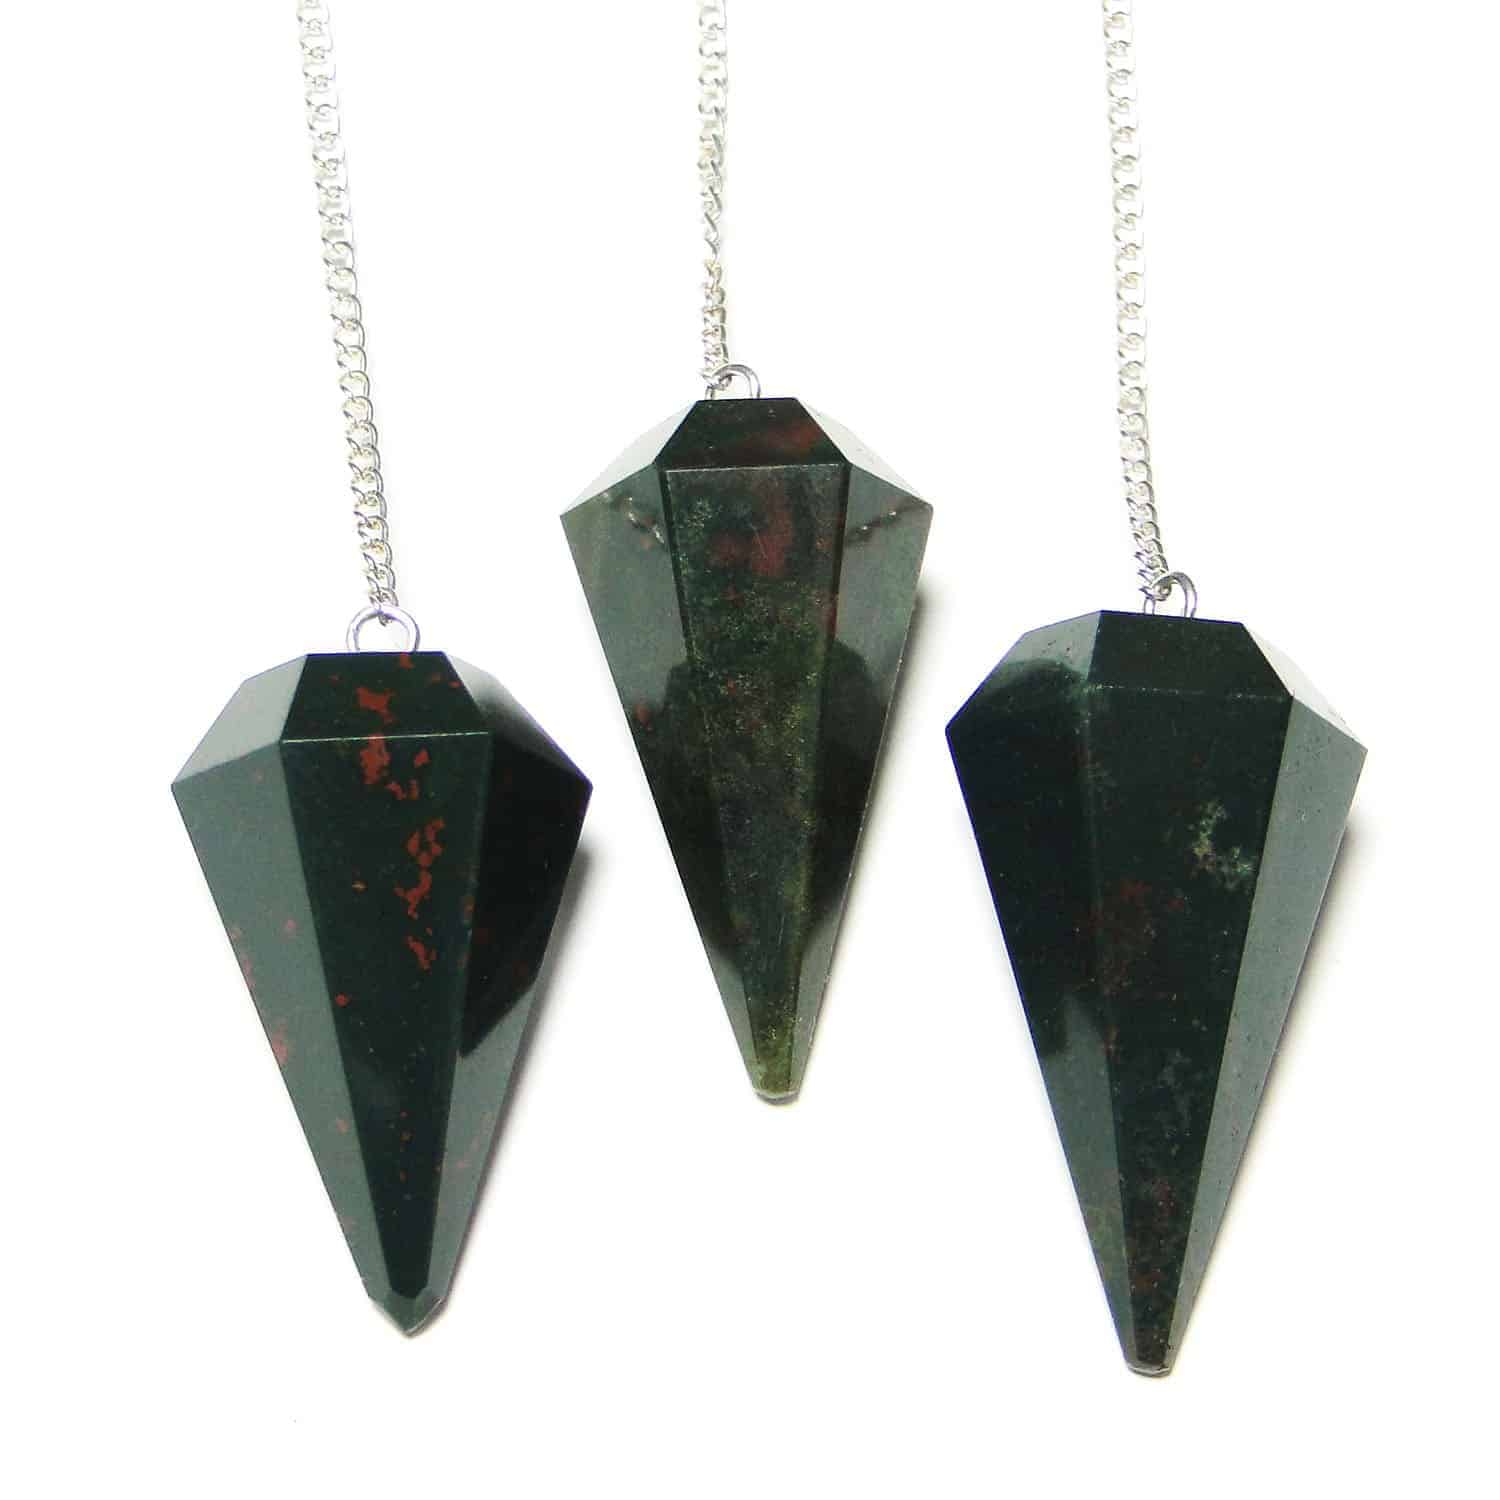 Green Moss Agate Faceted Dowsing Pendulum Nature's Crest PD014 ₹ 249.00